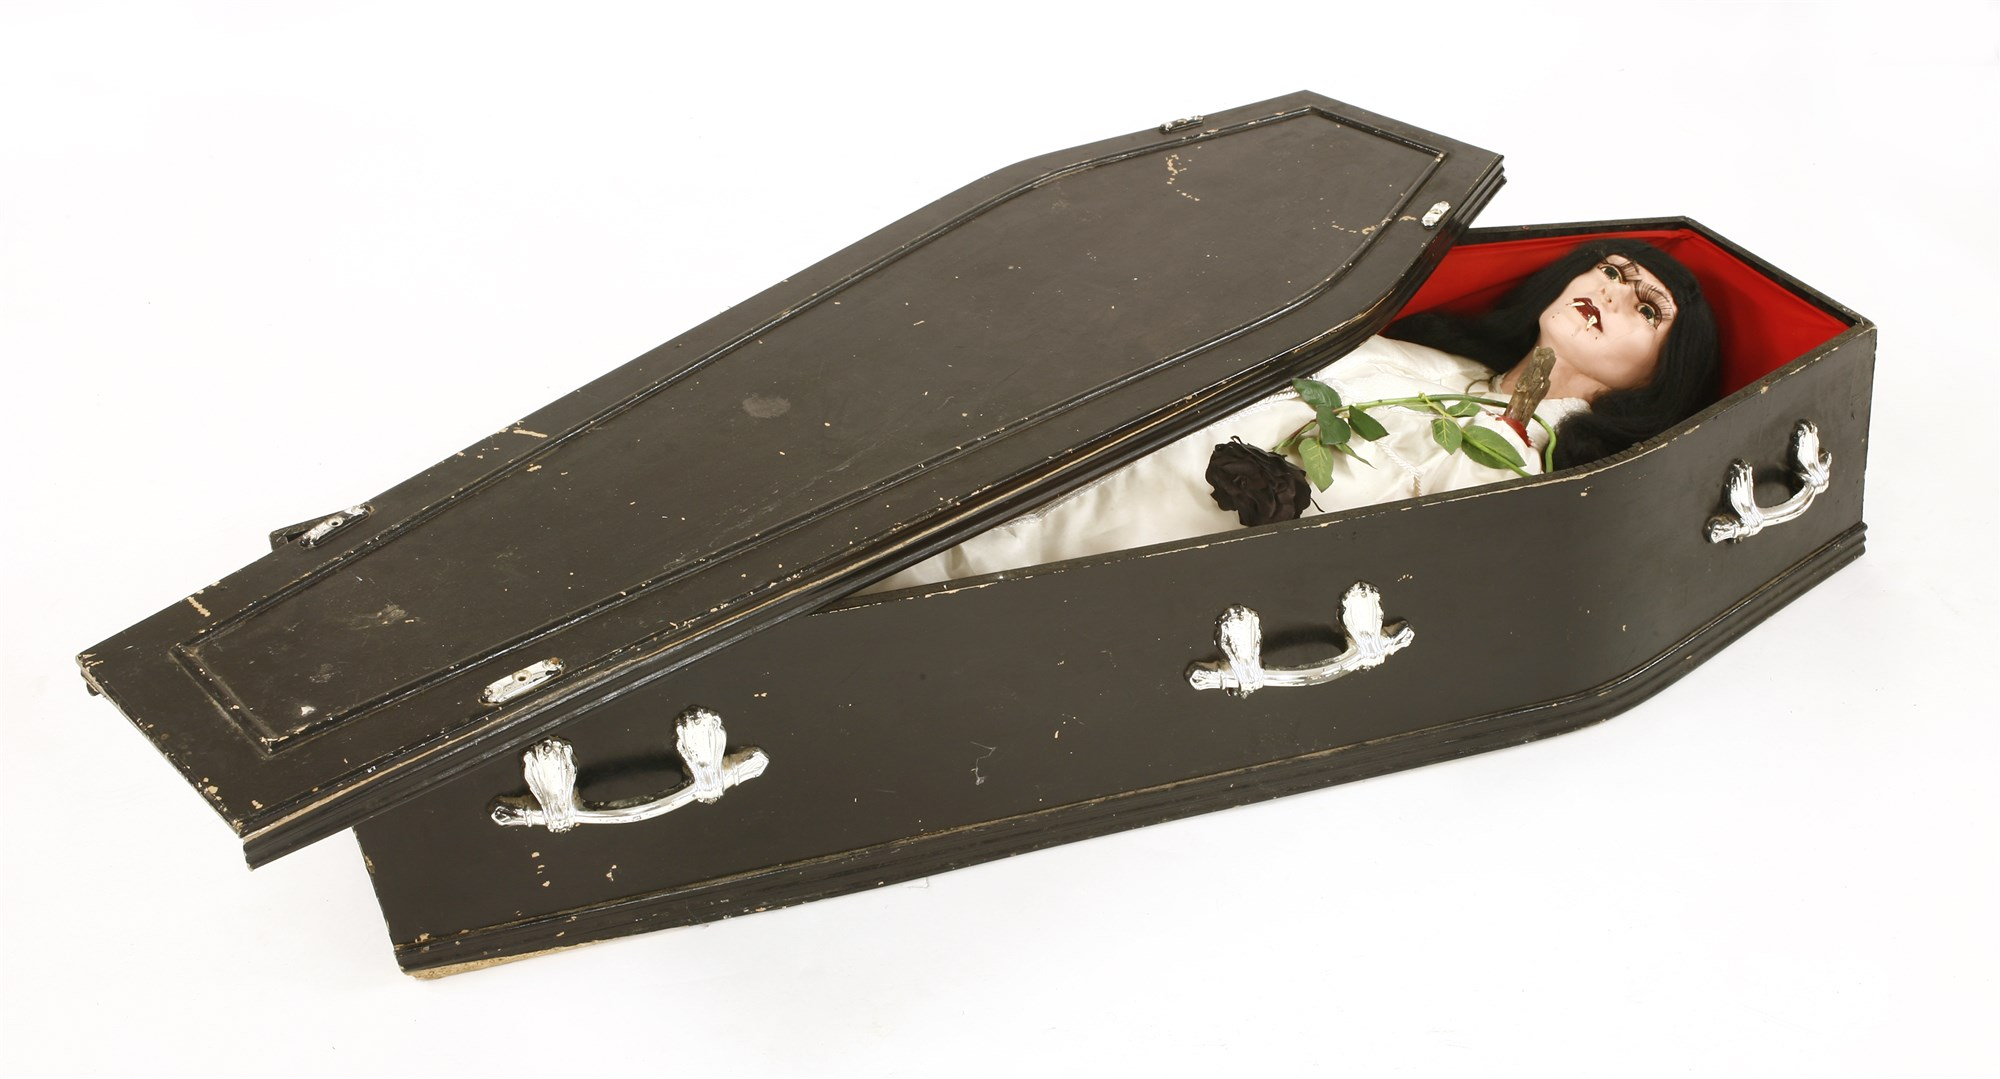 Working model of a vampire in her coffin